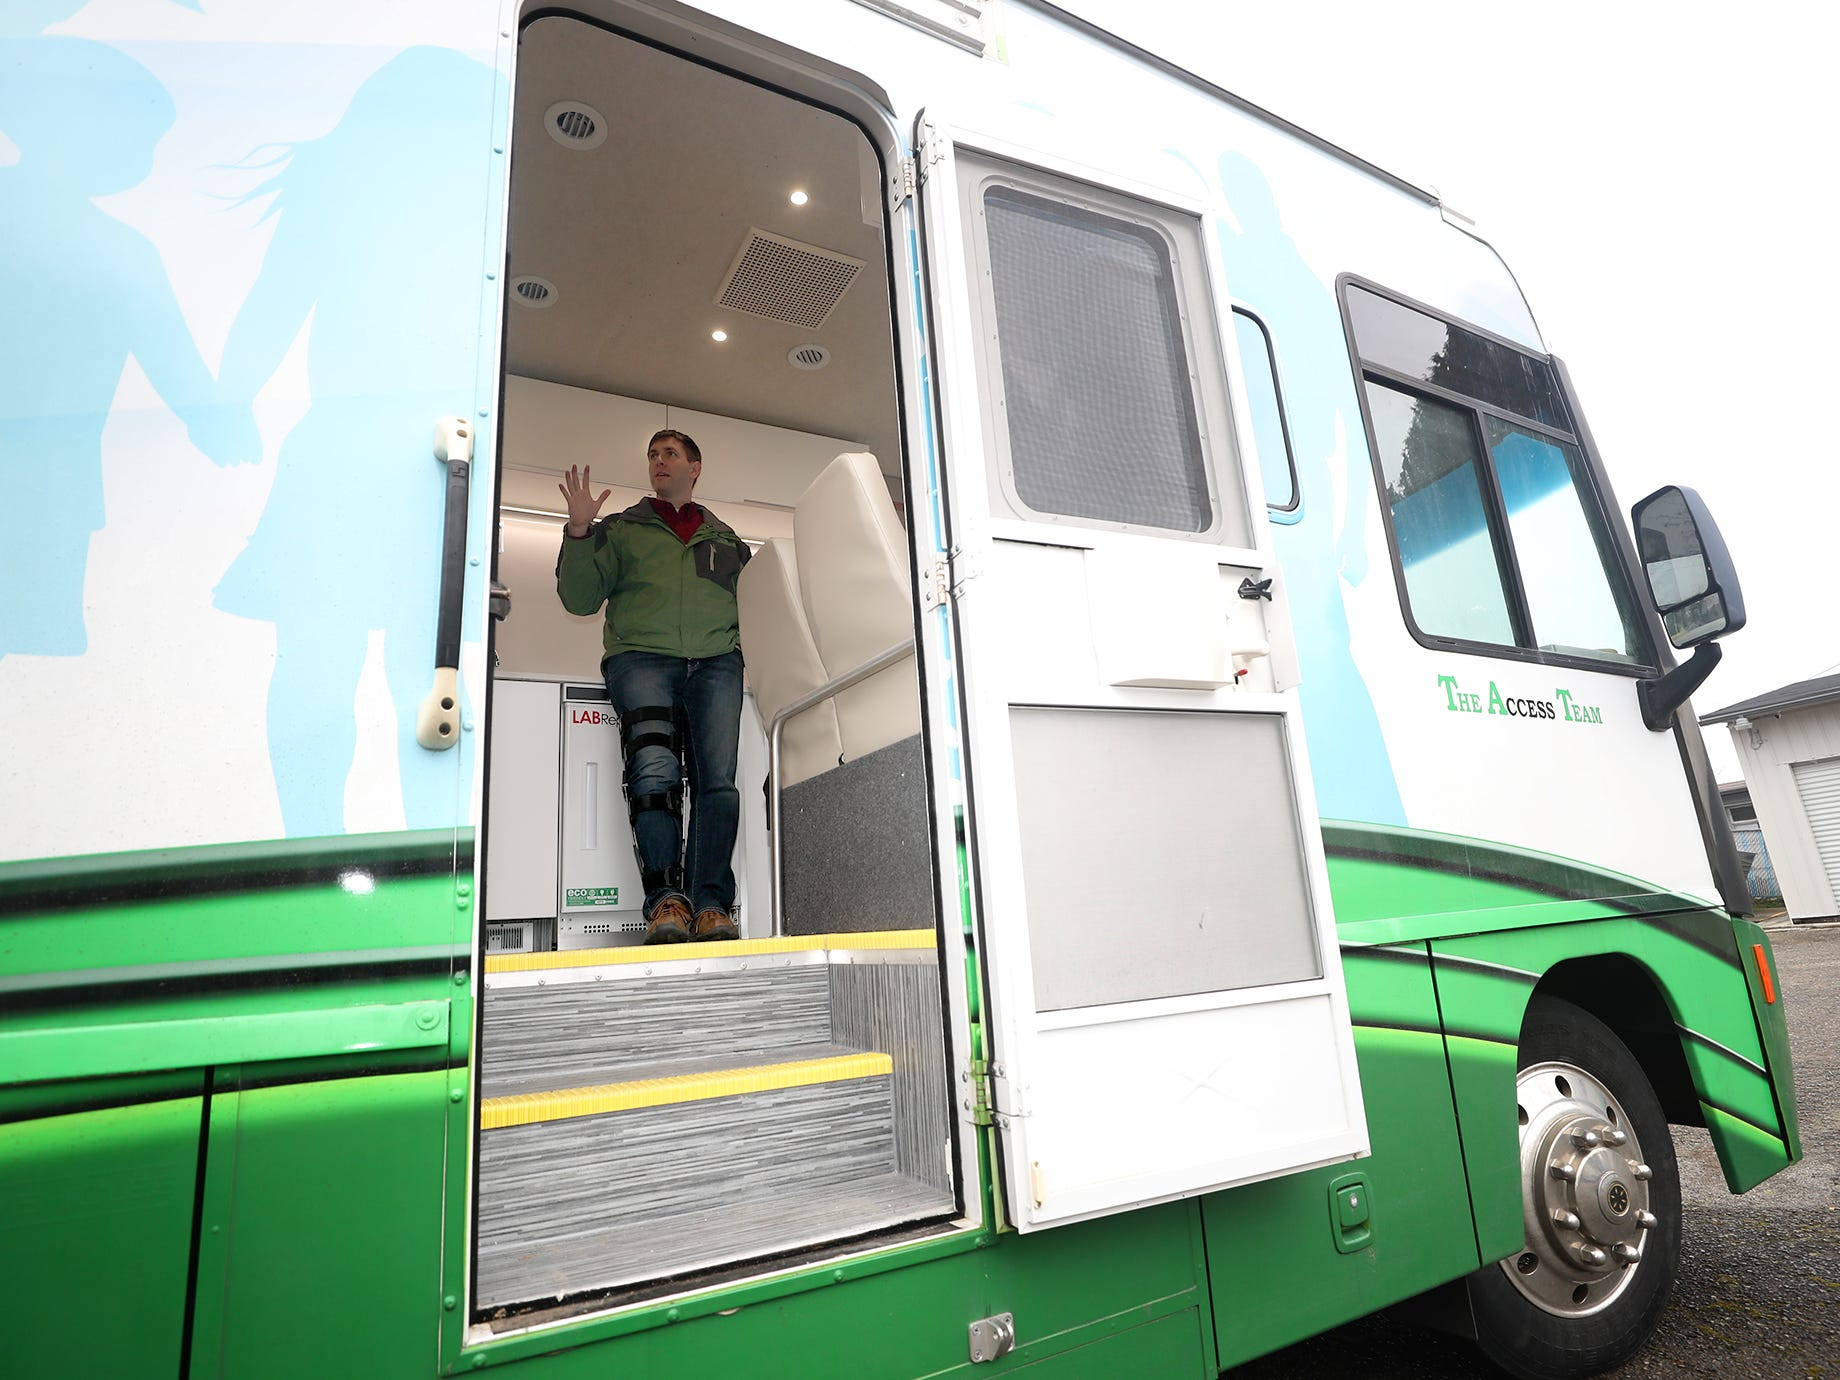 Peninsula Community Health Associate Medical Director Anthony Lyon-Loftus is framed in the doorway of their Mobile Primary Care unit as he talks about the vehicle on Wednesday, February 27, 2019.